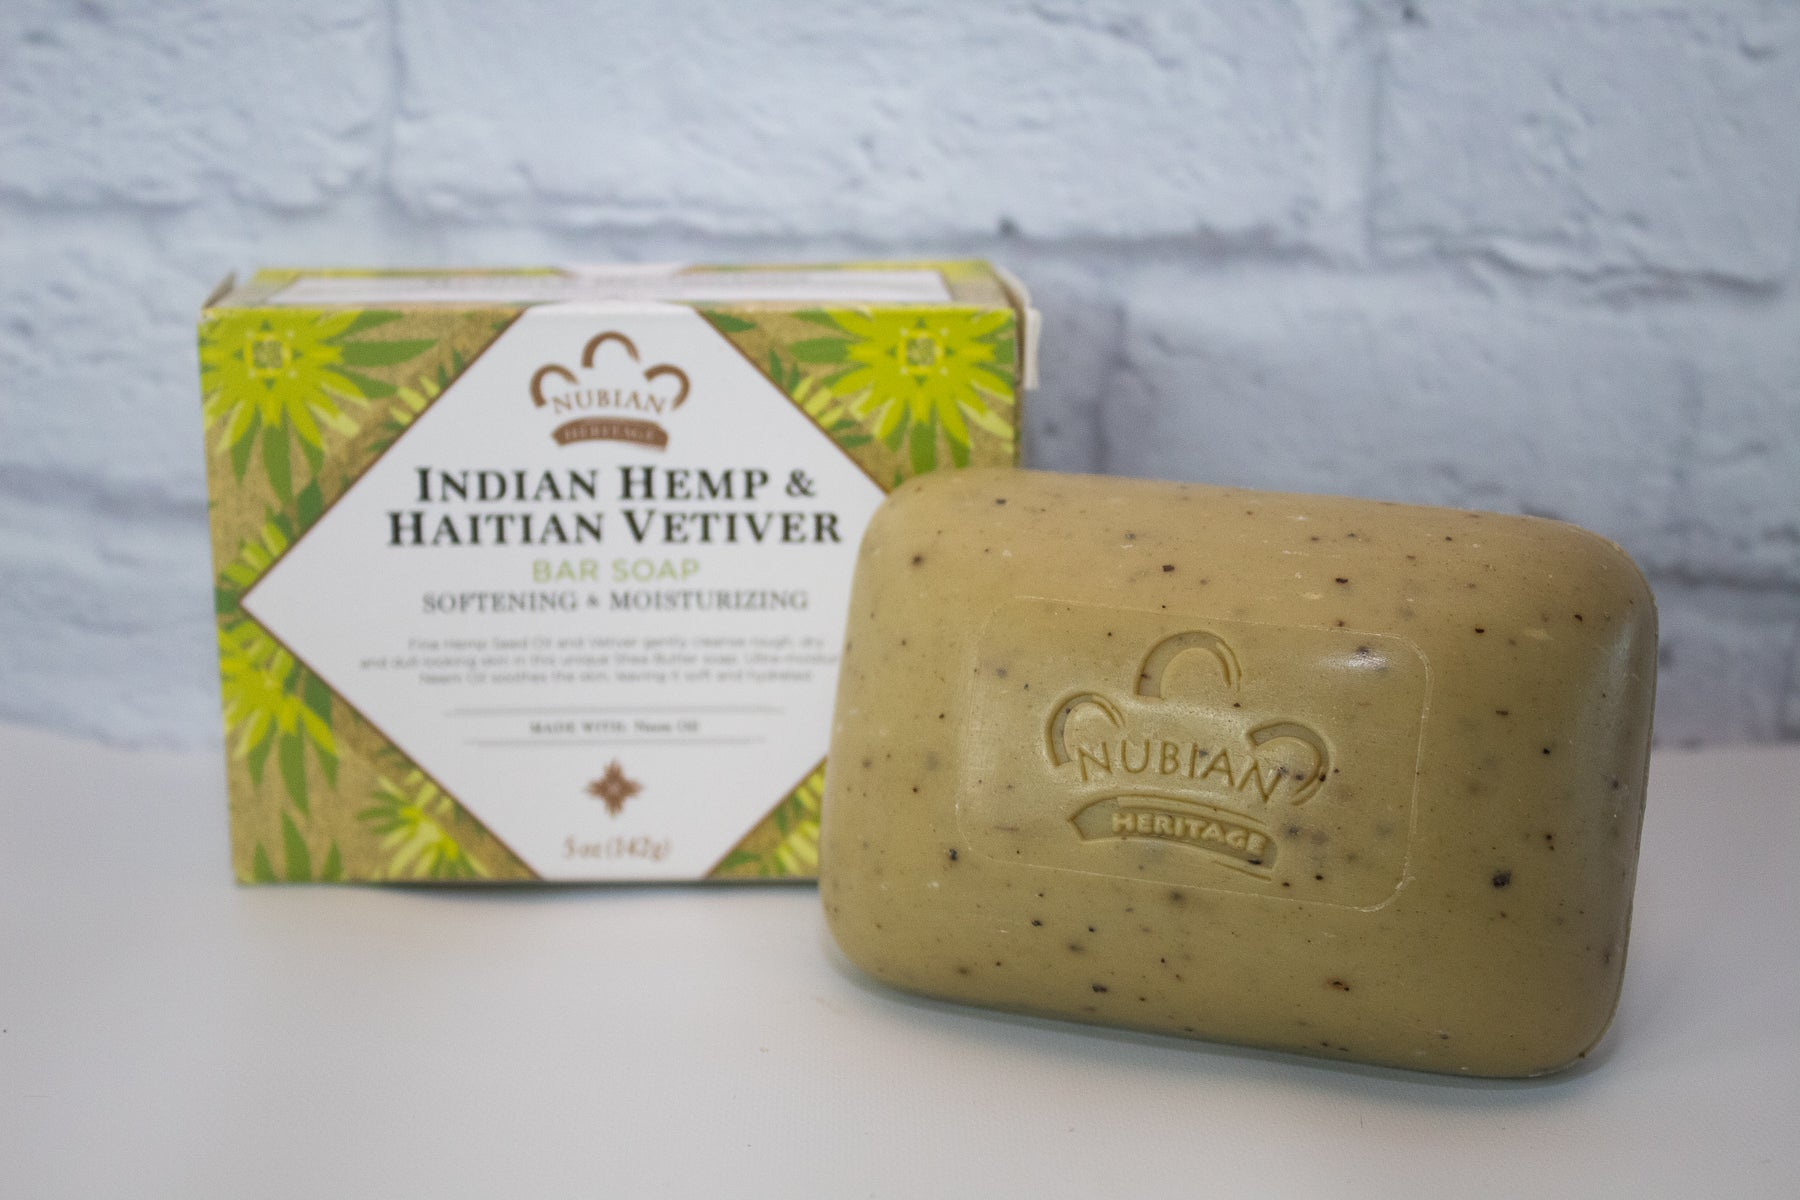 Indian Hemp & Haitian Vetiver Soap, 5oz